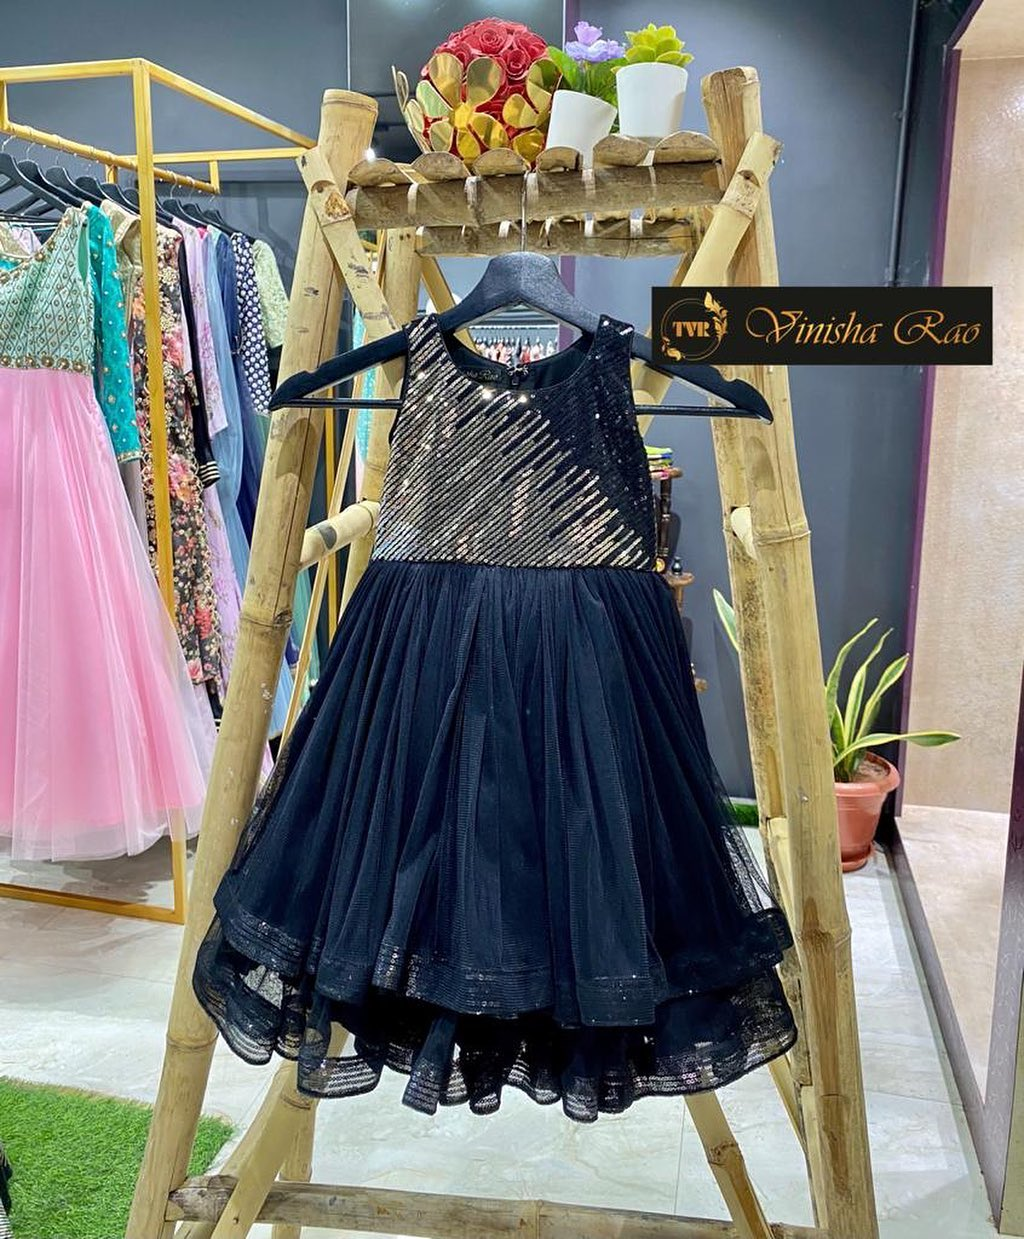 Black kids tulle long frock teamed with sequence yoke having double layered flare at the bottom of the frock from the house of Vinisha rao designer studio !! Suitable for all kind of occasions !! 2021-04-29